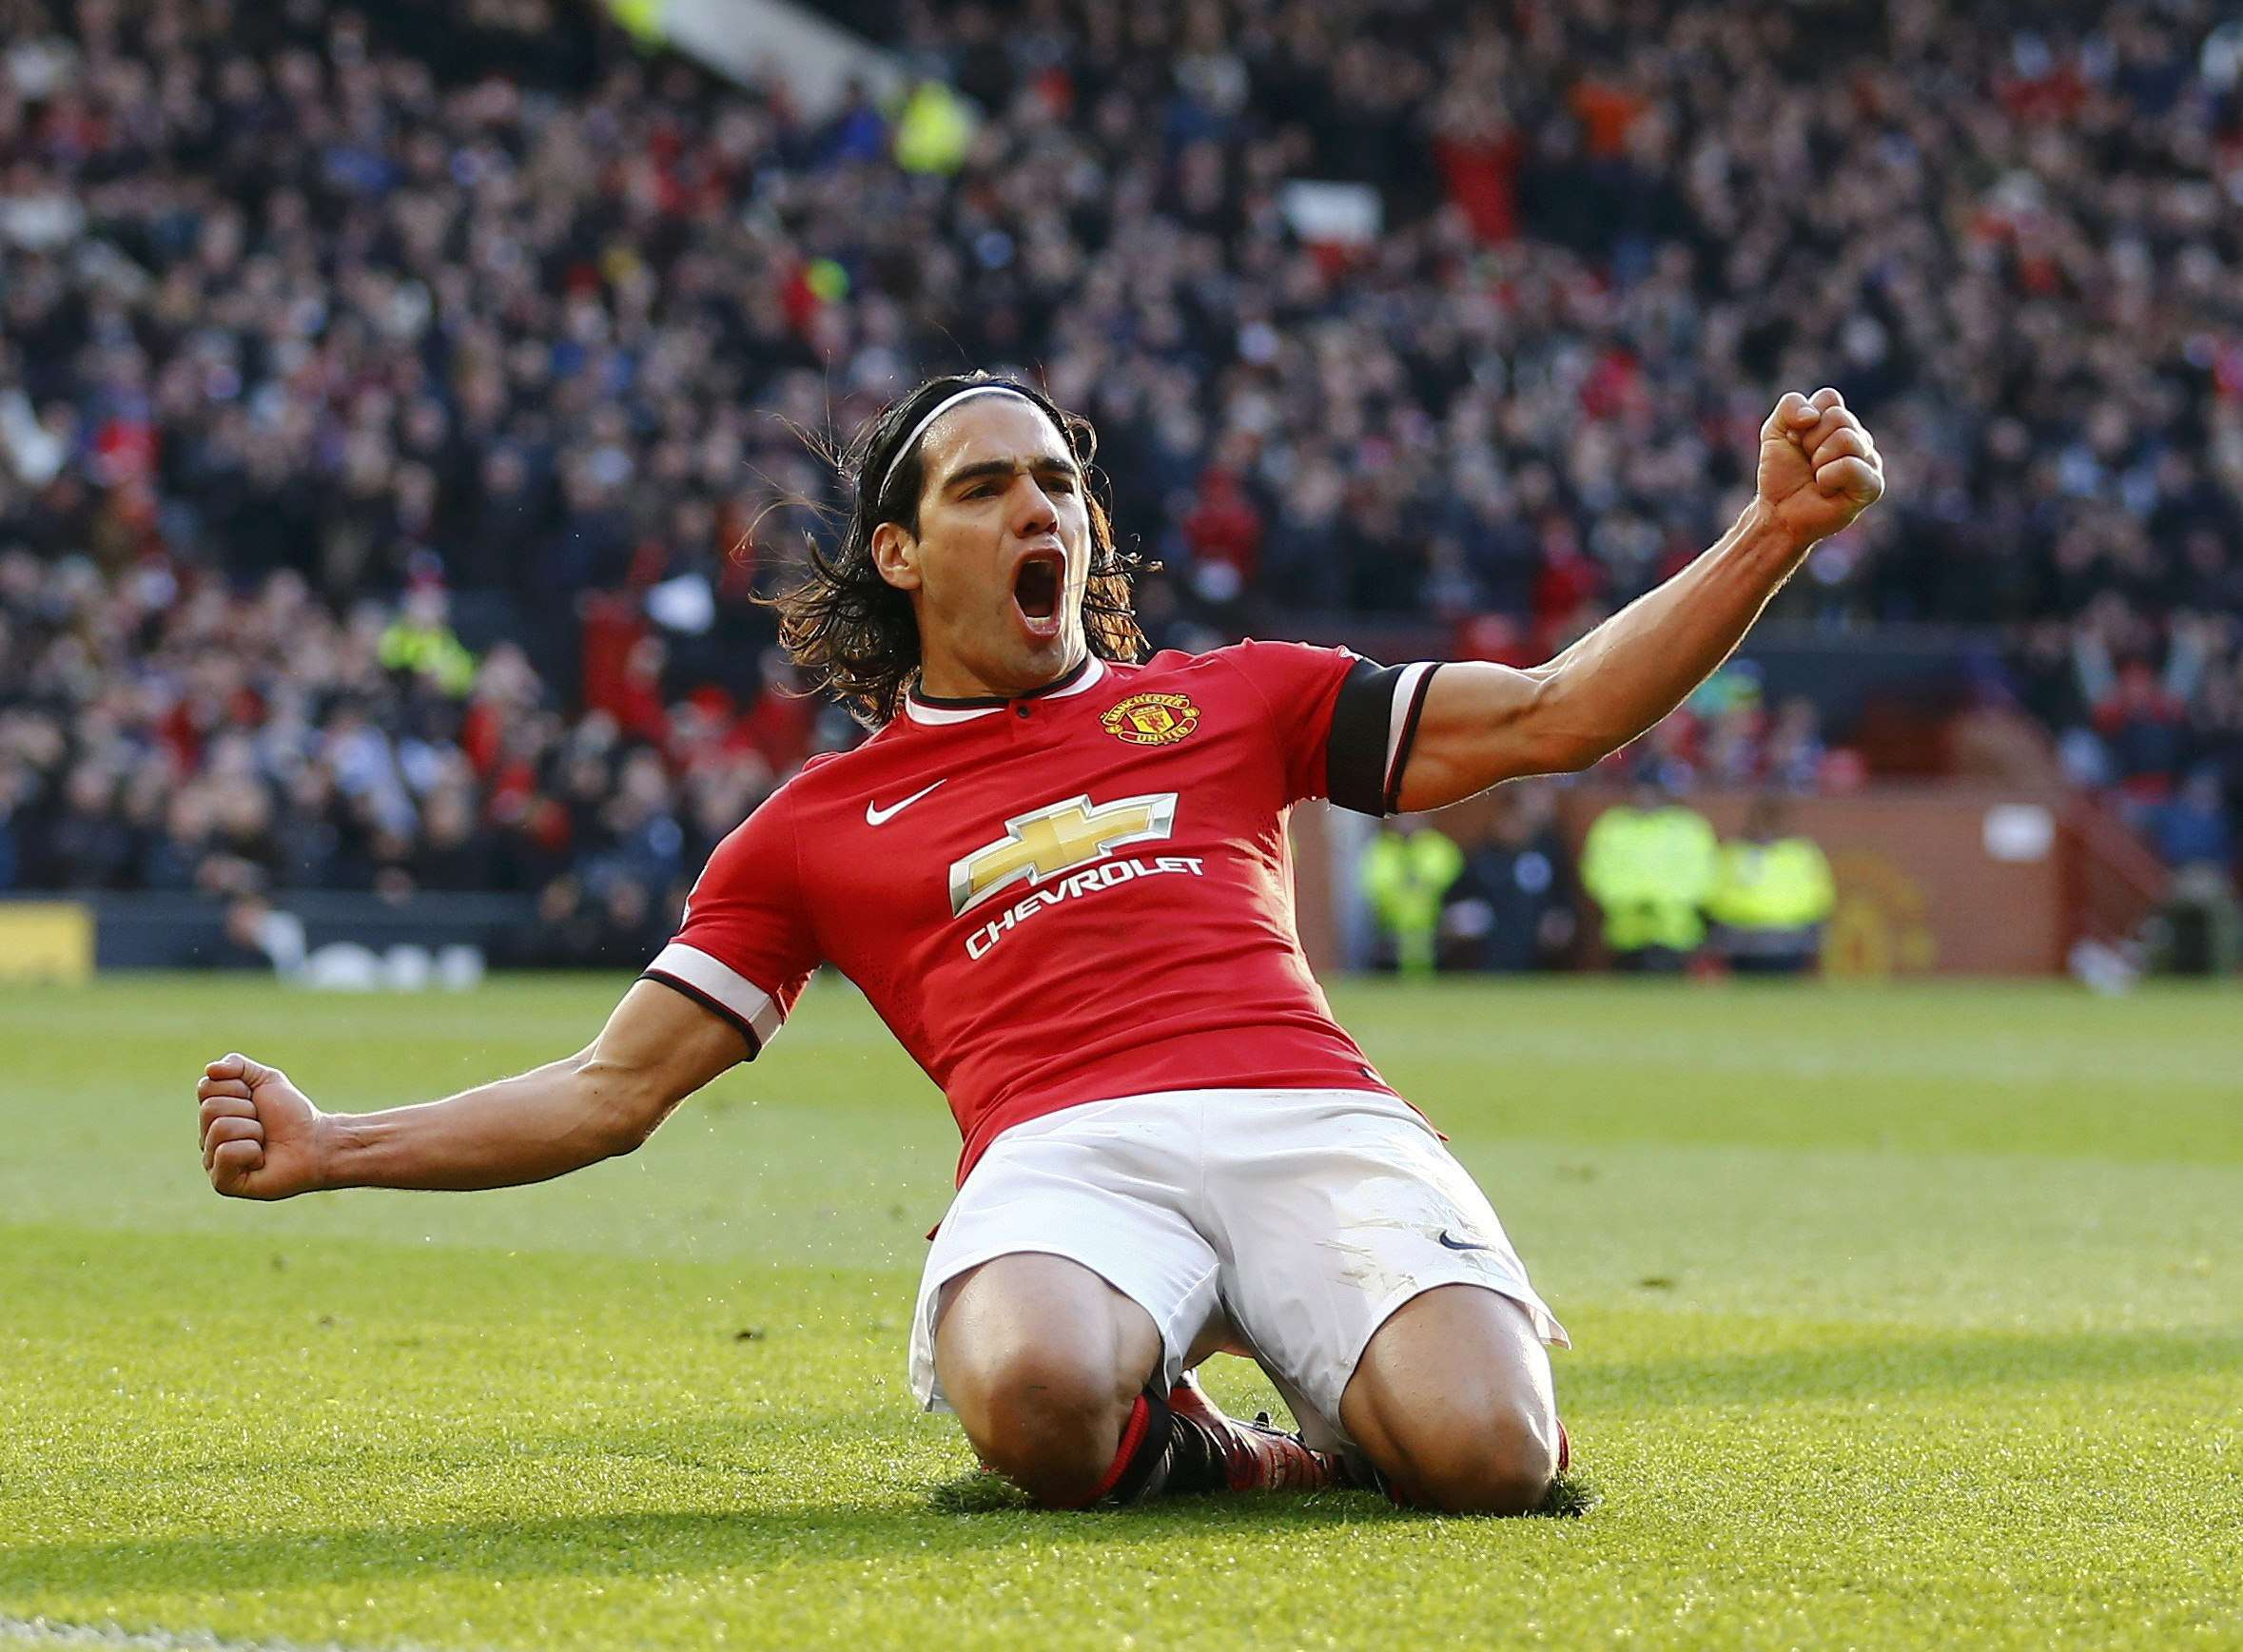 Manchester United's Radamel Falcao celebrates his goal during their English Premier League soccer match against Leicester City at Old Trafford in Manchester, northern England January 31, 2015. REUTERS/Darren Staples (BRITAIN - Tags: SPORT SOCCER TPX IMAGES OF THE DAY) EDITORIAL USE ONLY. NO USE WITH UNAUTHORIZED AUDIO, VIDEO, DATA, FIXTURE LISTS, CLUB/LEAGUE LOGOS OR 'LIVE' SERVICES. ONLINE IN-MATCH USE LIMITED TO 45 IMAGES, NO VIDEO EMULATION. NO USE IN BETTING, GAMES OR SINGLE CLUB/LEAGUE/PLAYER PUBLICATIONS.FOR EDITORIAL USE ONLY. NOT FOR SALE FOR MARKETING OR ADVERTISING CAMPAIGNS. Foto: DARREN STAPLES/REUTERS